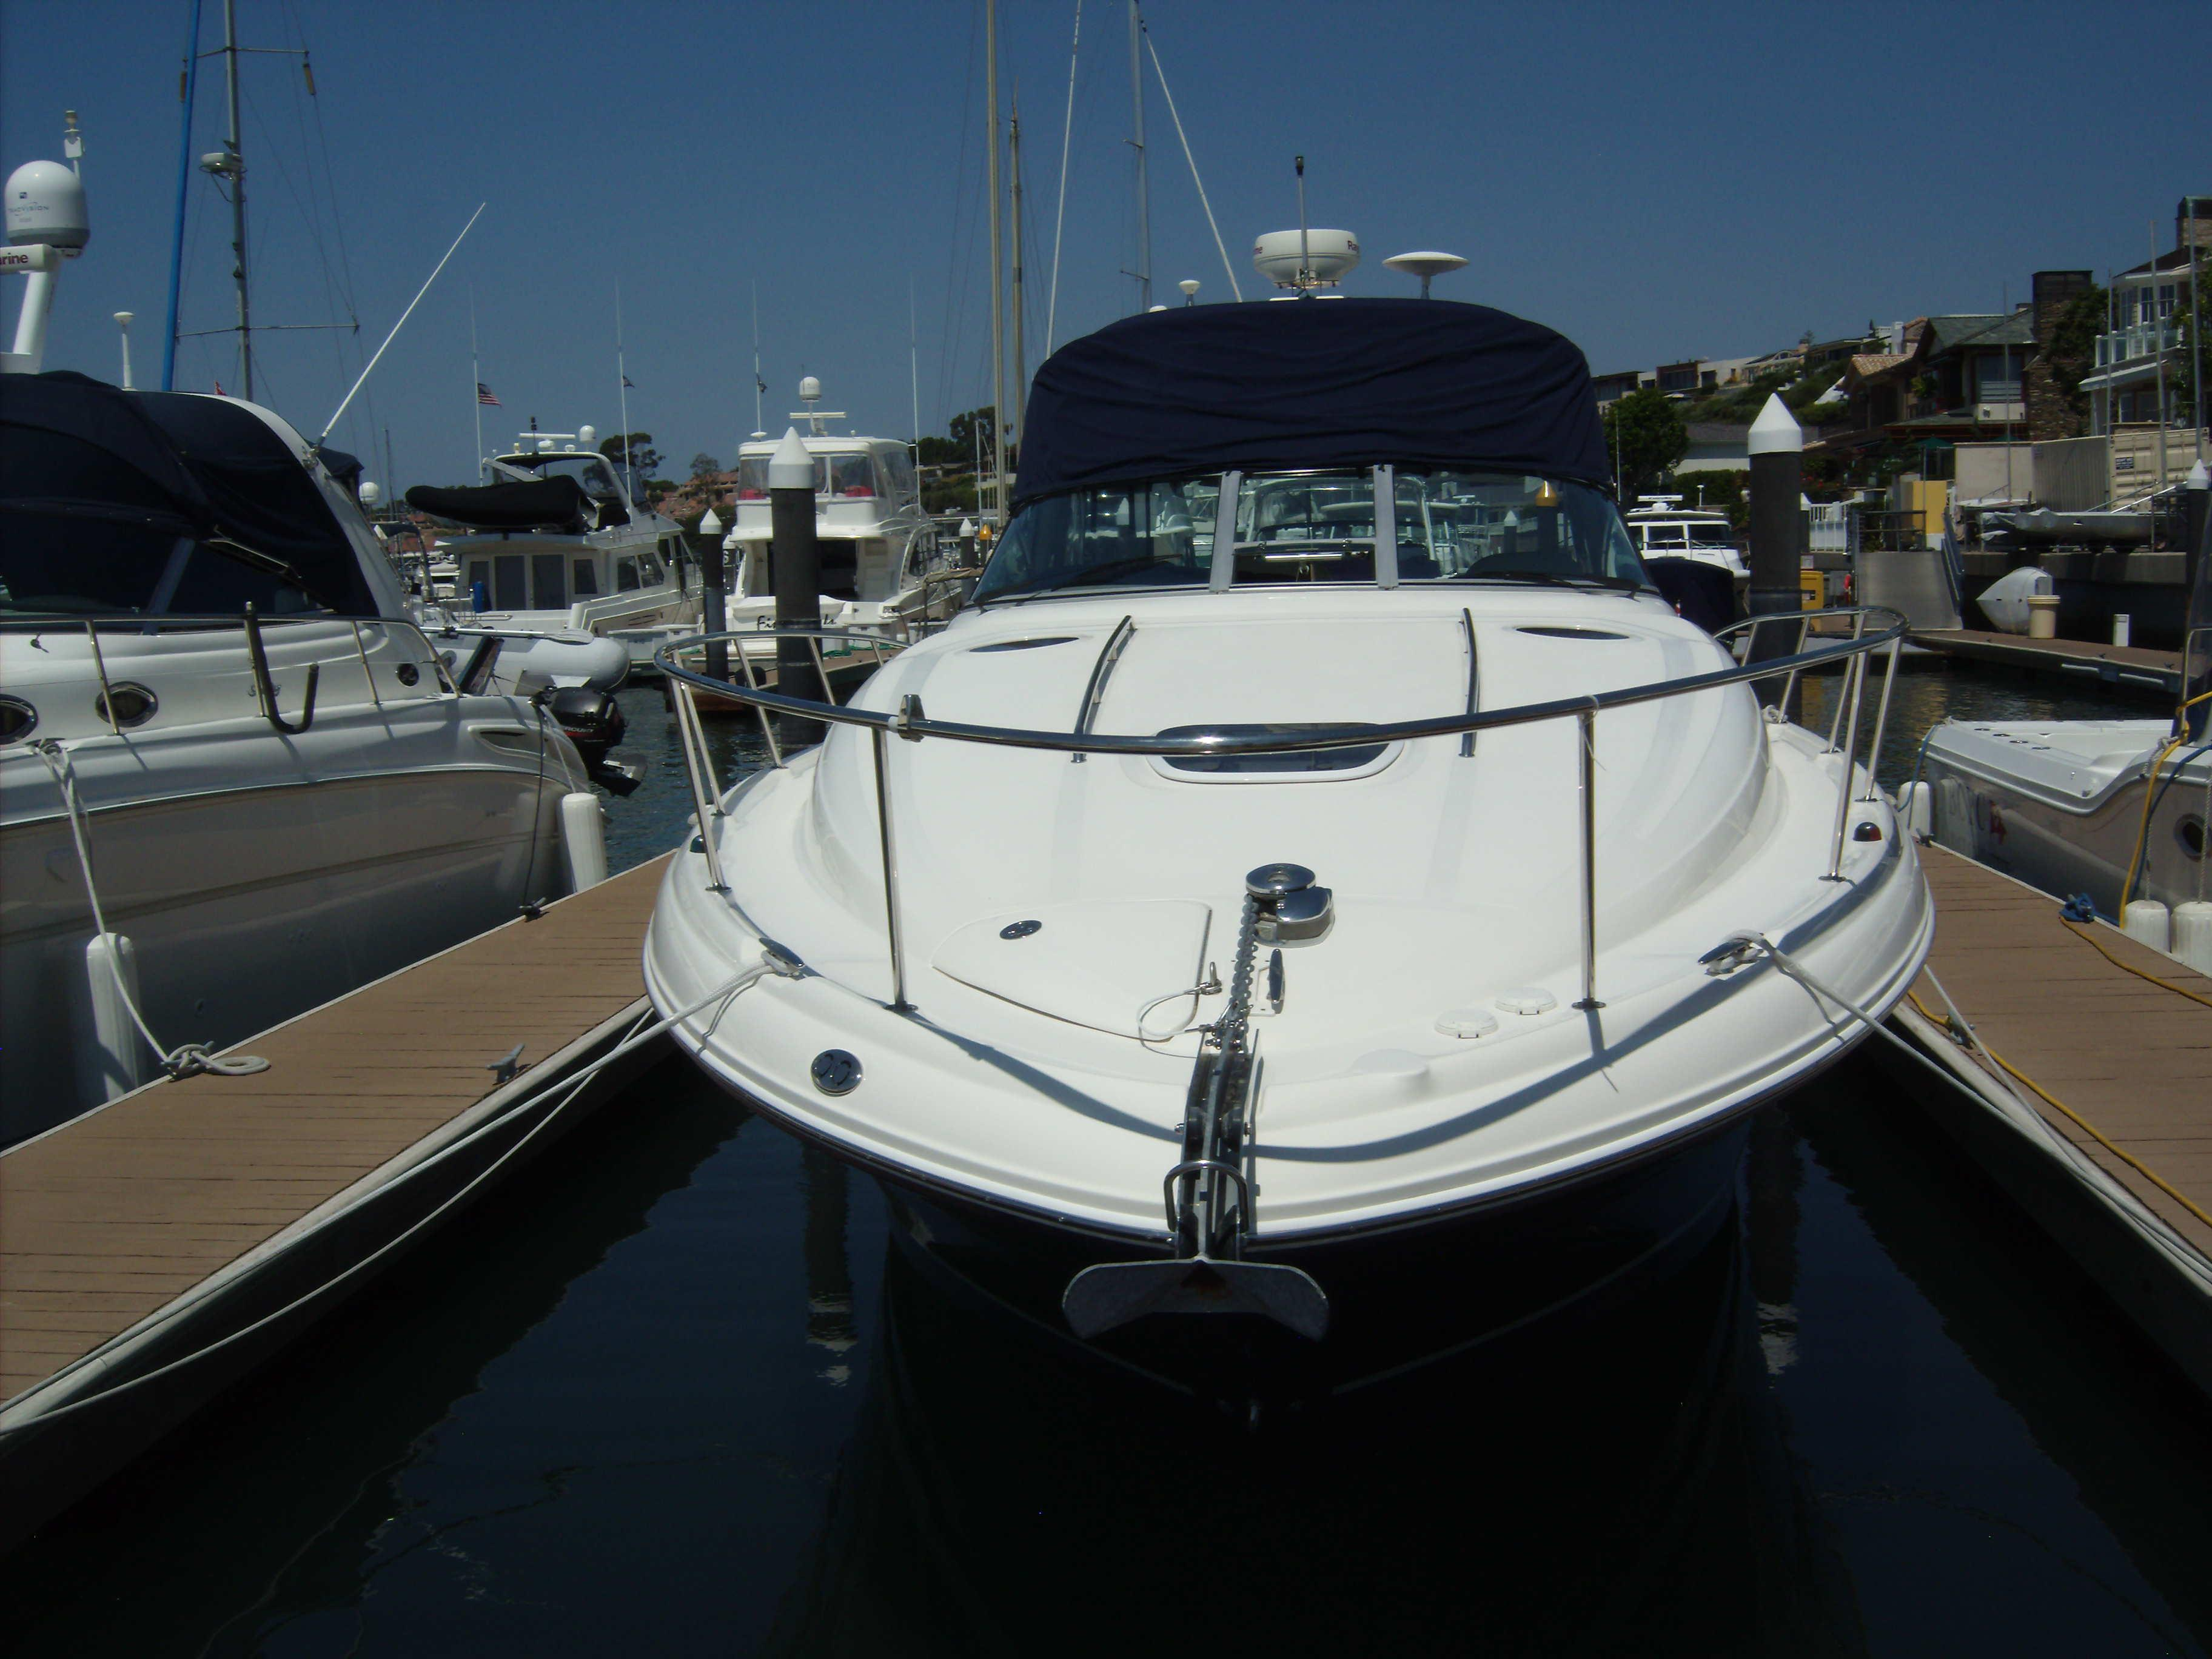 Starboard Bow Photo